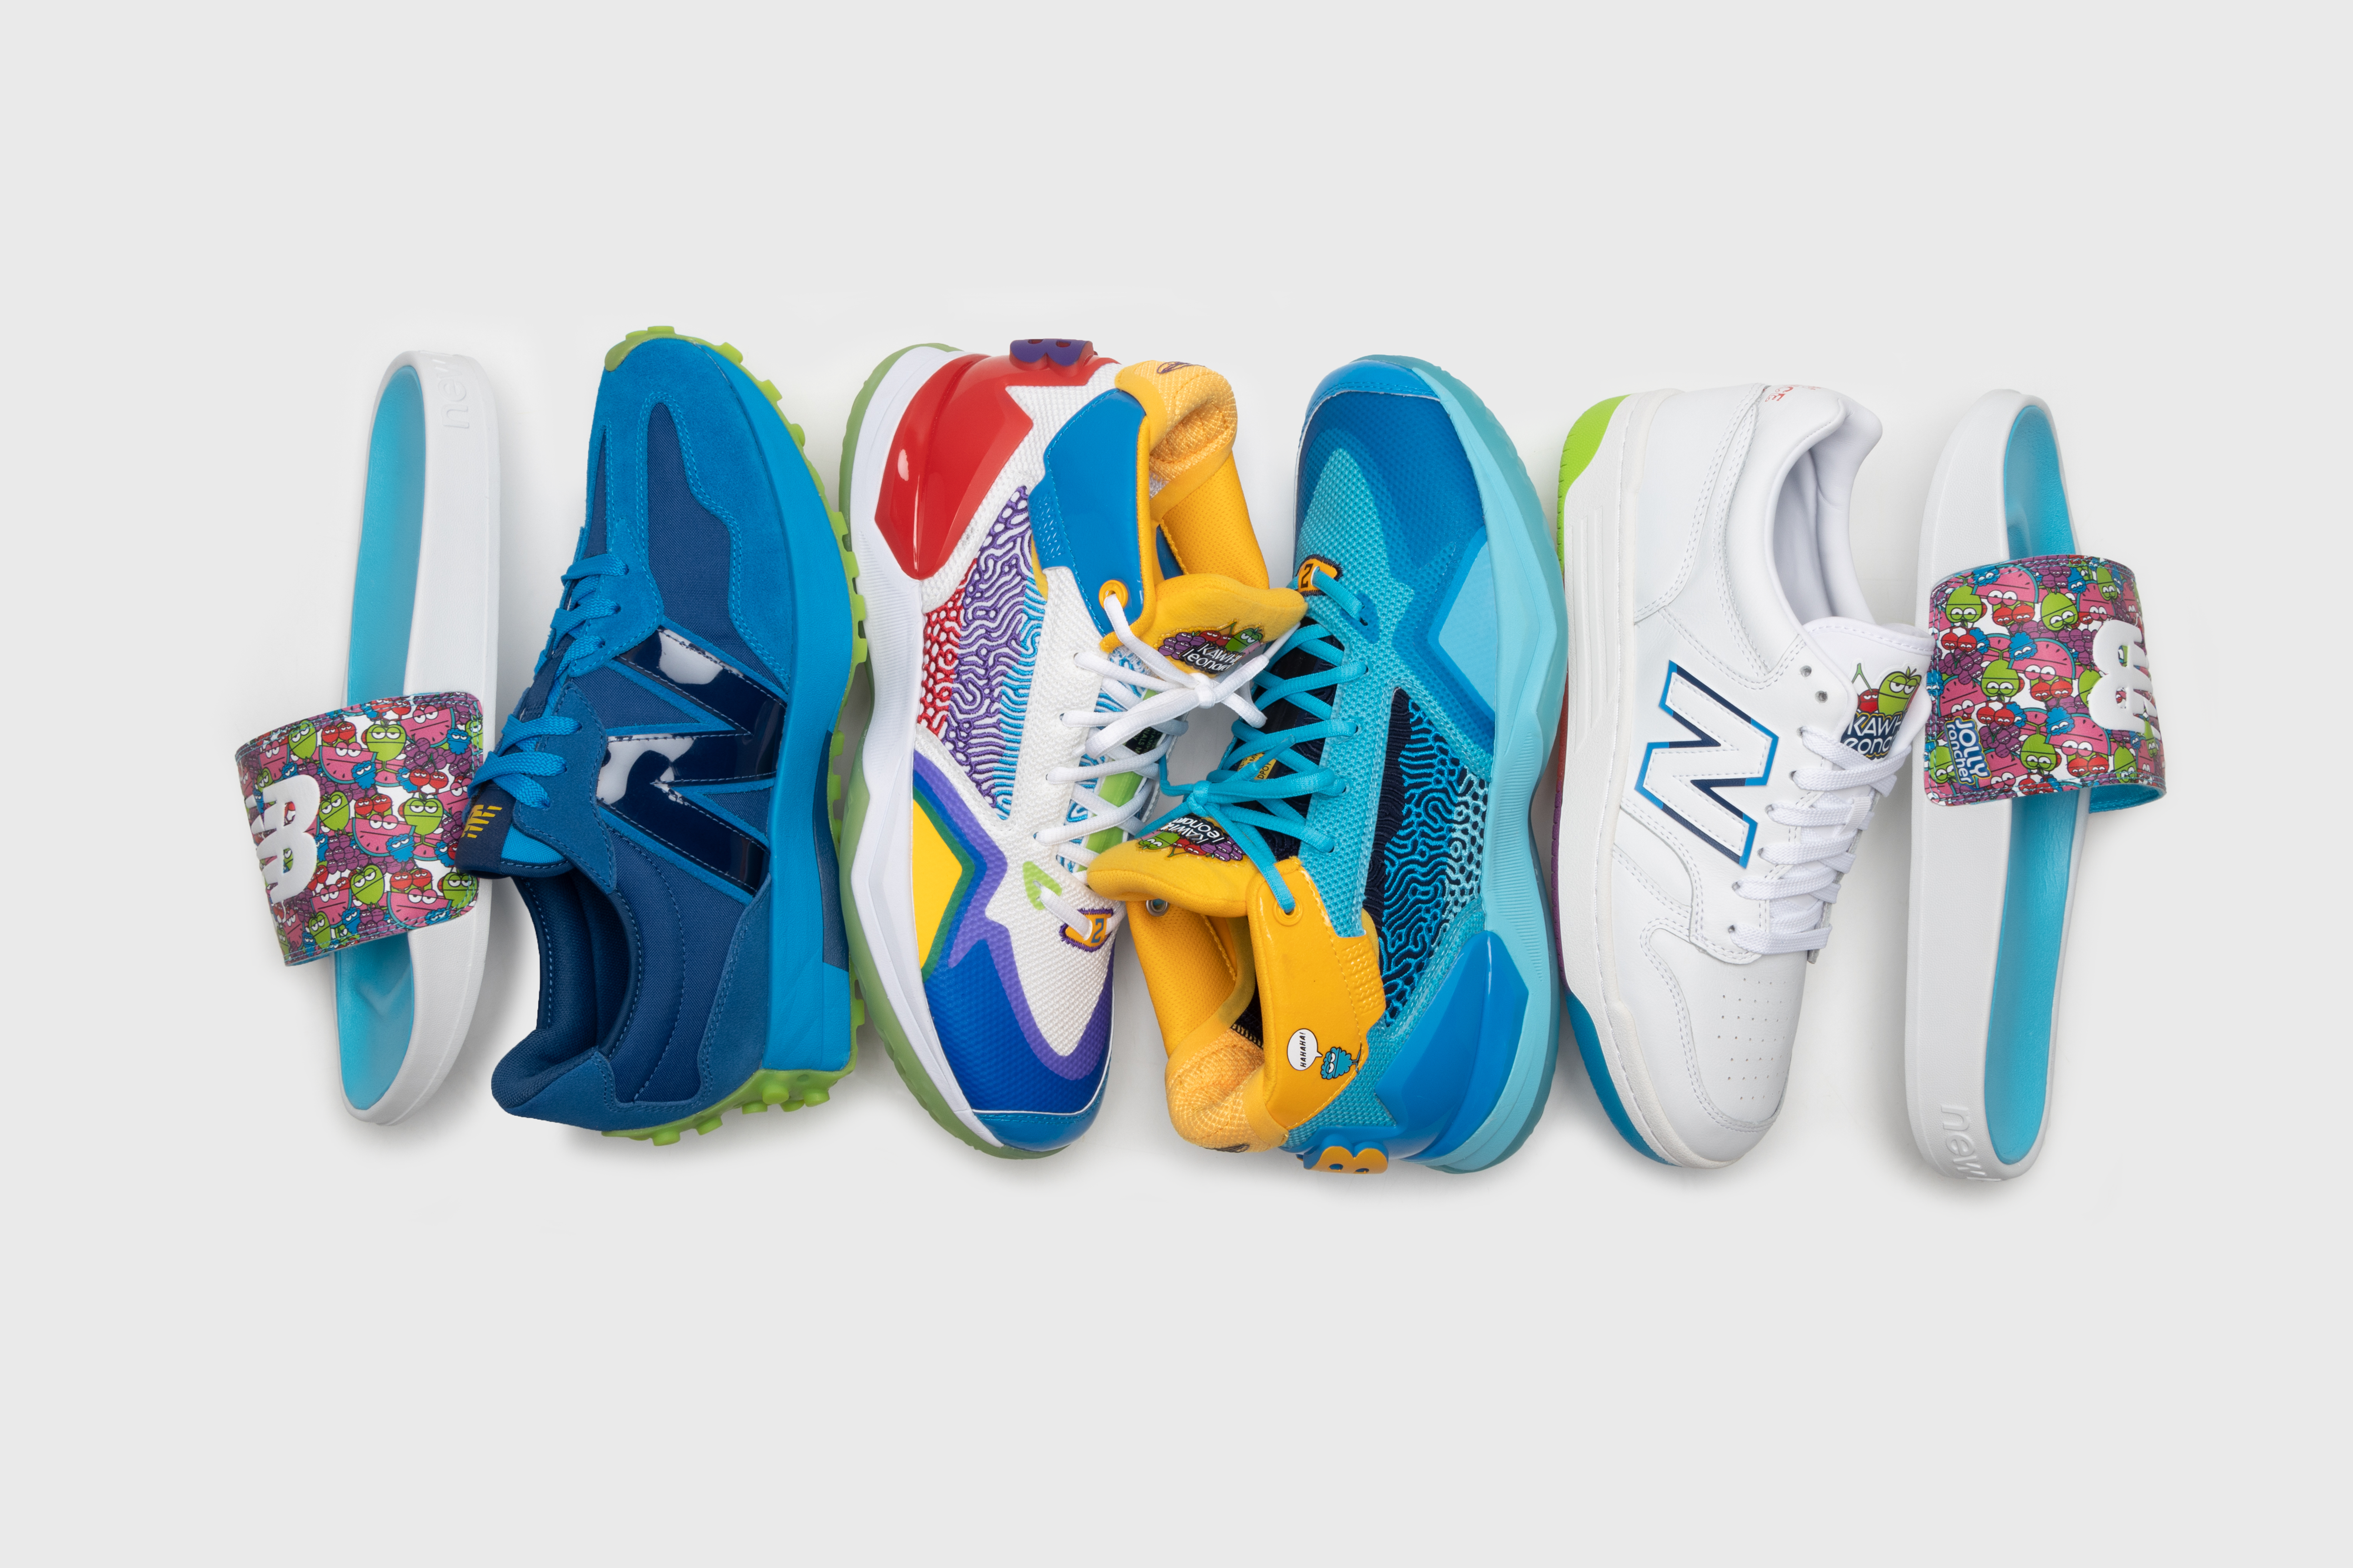 several shoes from the New Balance KAWHI Jolly Rancher collection on a white background